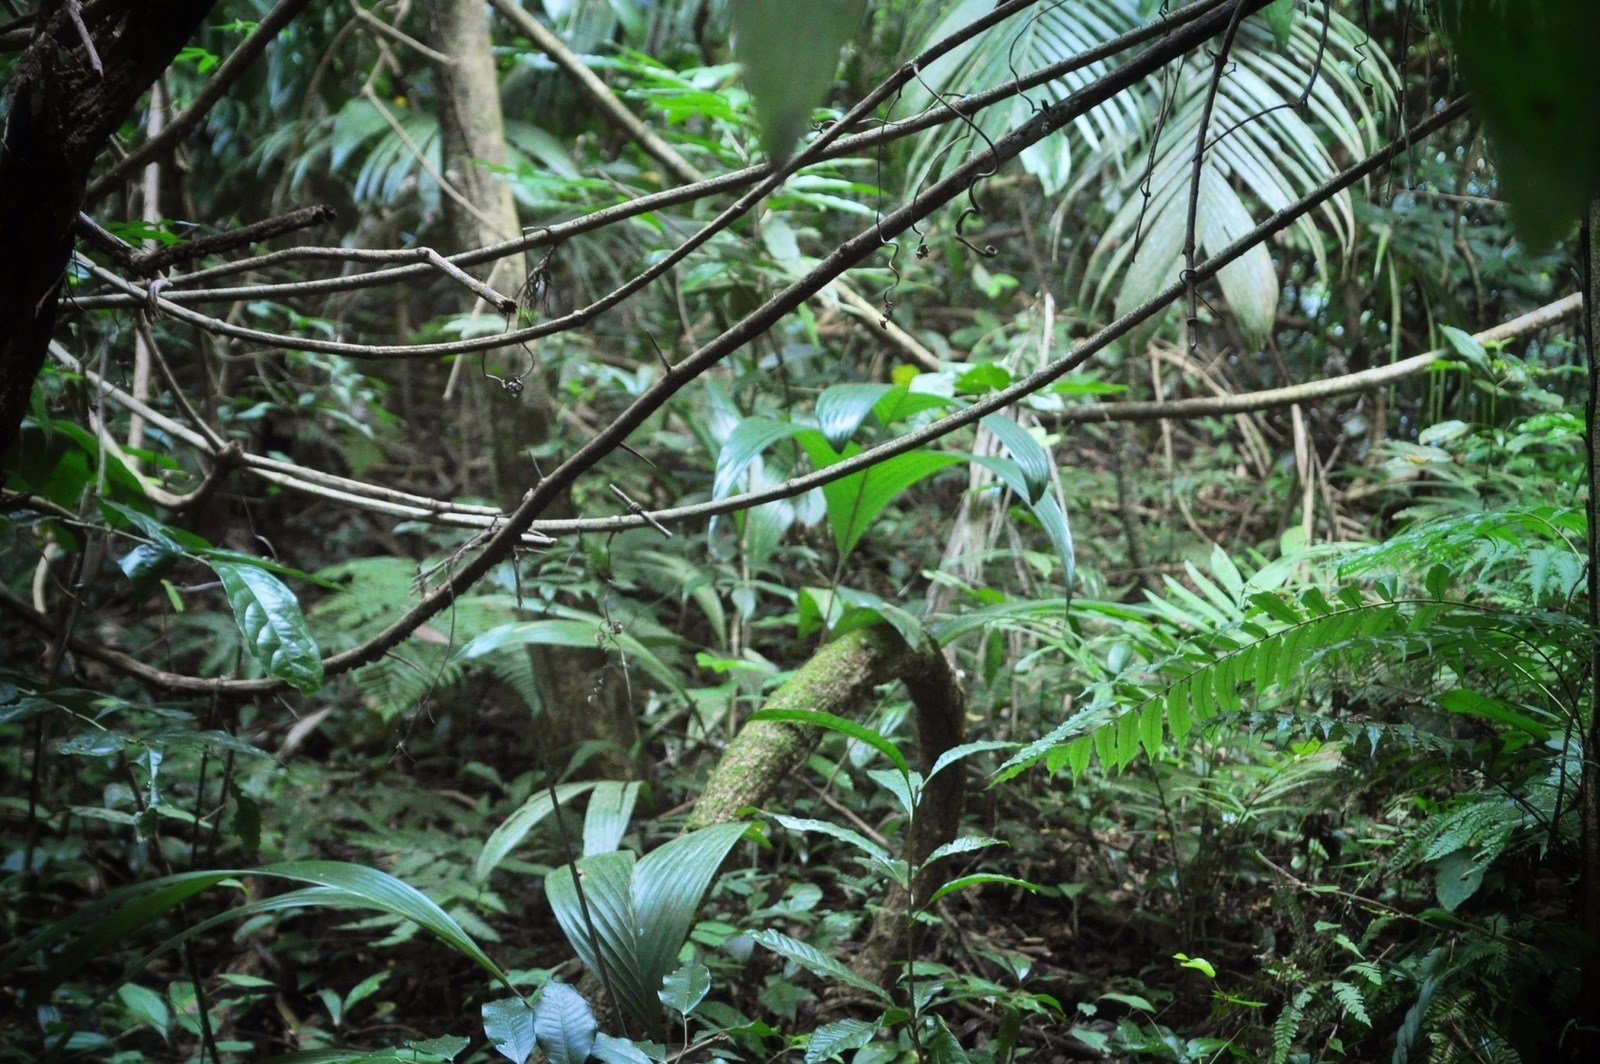 Végétation de la jungle à Palenque